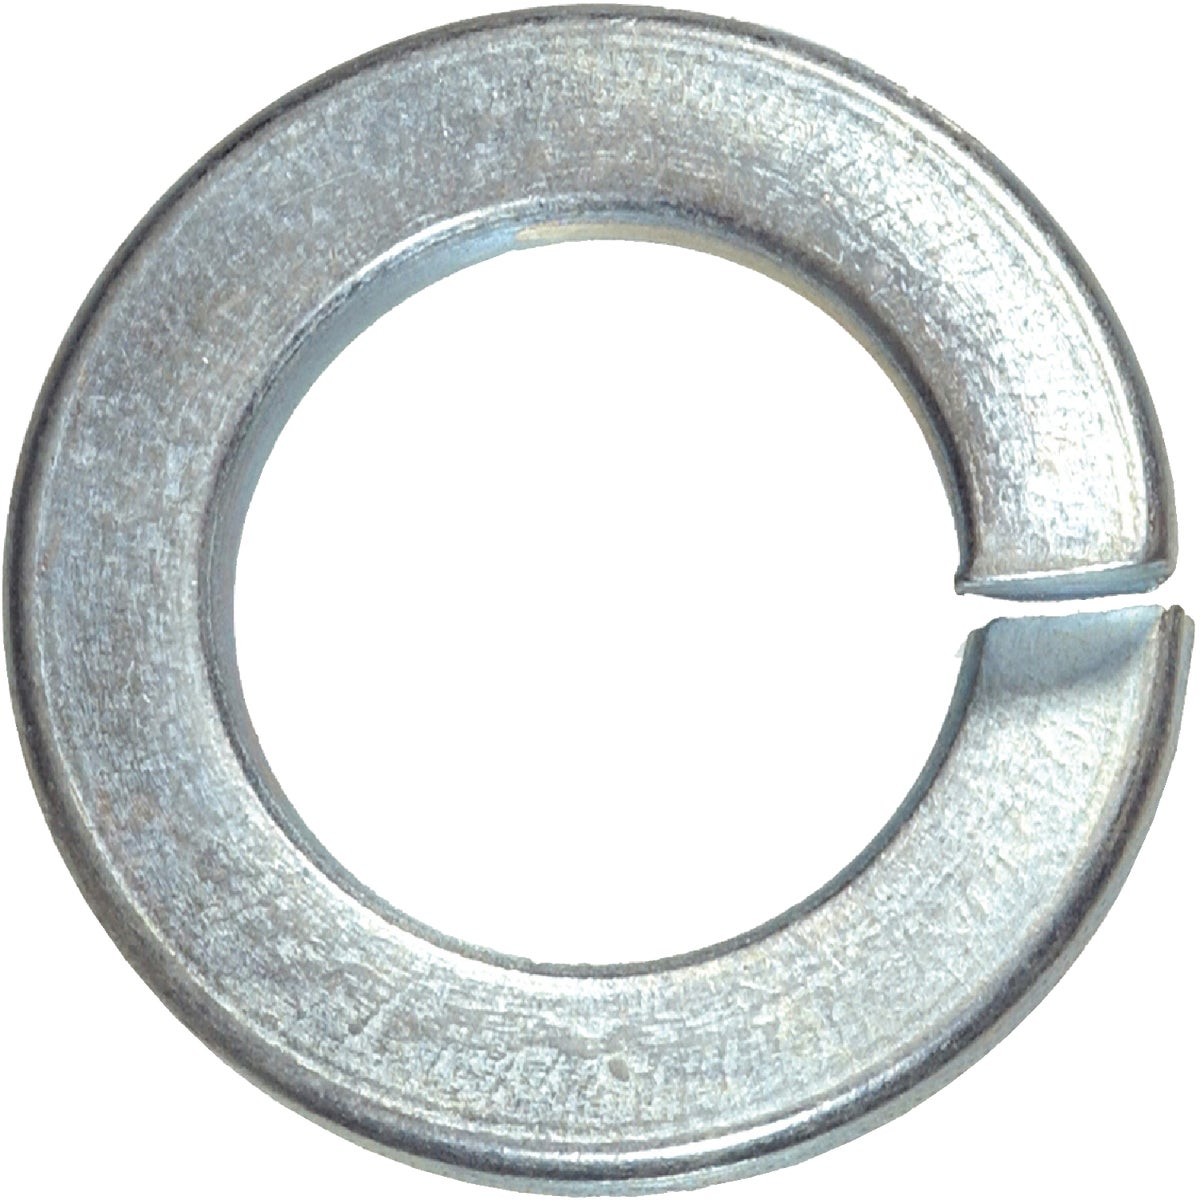 "100PC 3/8"" LOCK WASHER"